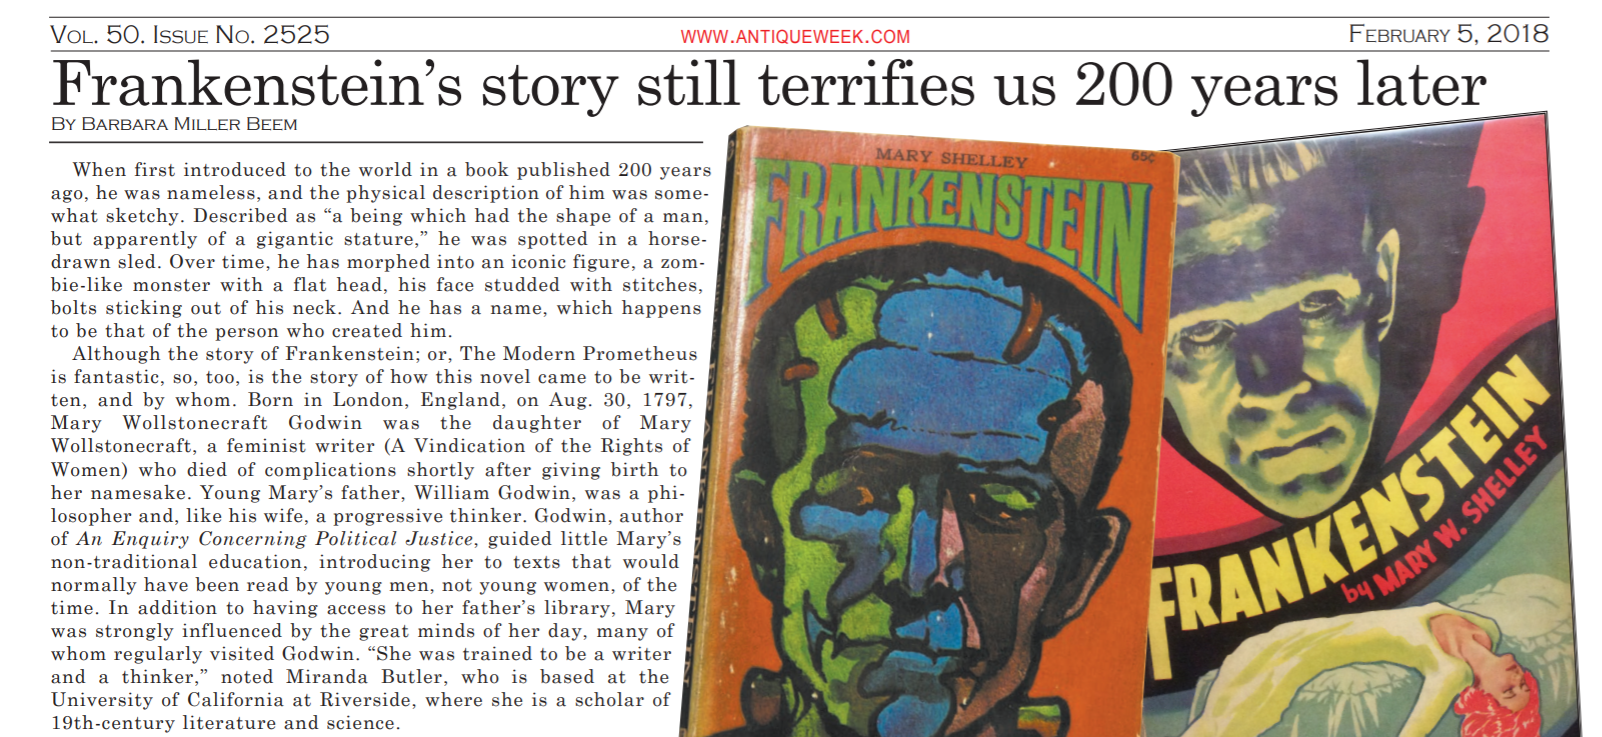 I was interviewed by Barbara Miller Beem for a special issue of Antique Week Magazine that featured Mary Shelley's Frankenstein and the Antiquarian Book fair. Click this image to read Beem's article as a PDF.